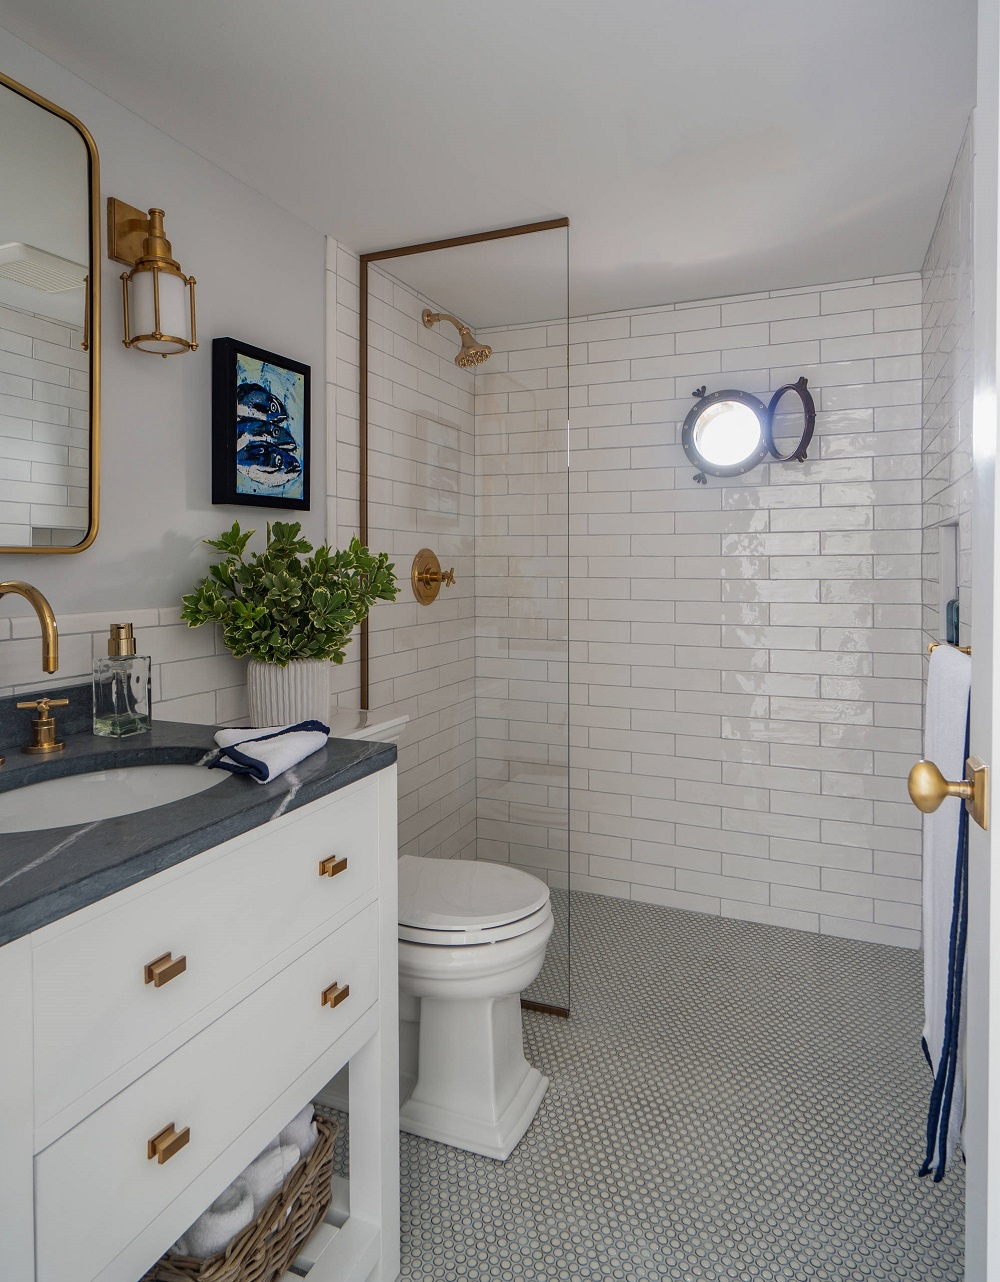 The Awesome Nautical Bathroom Decor And Pictures To Inspire You